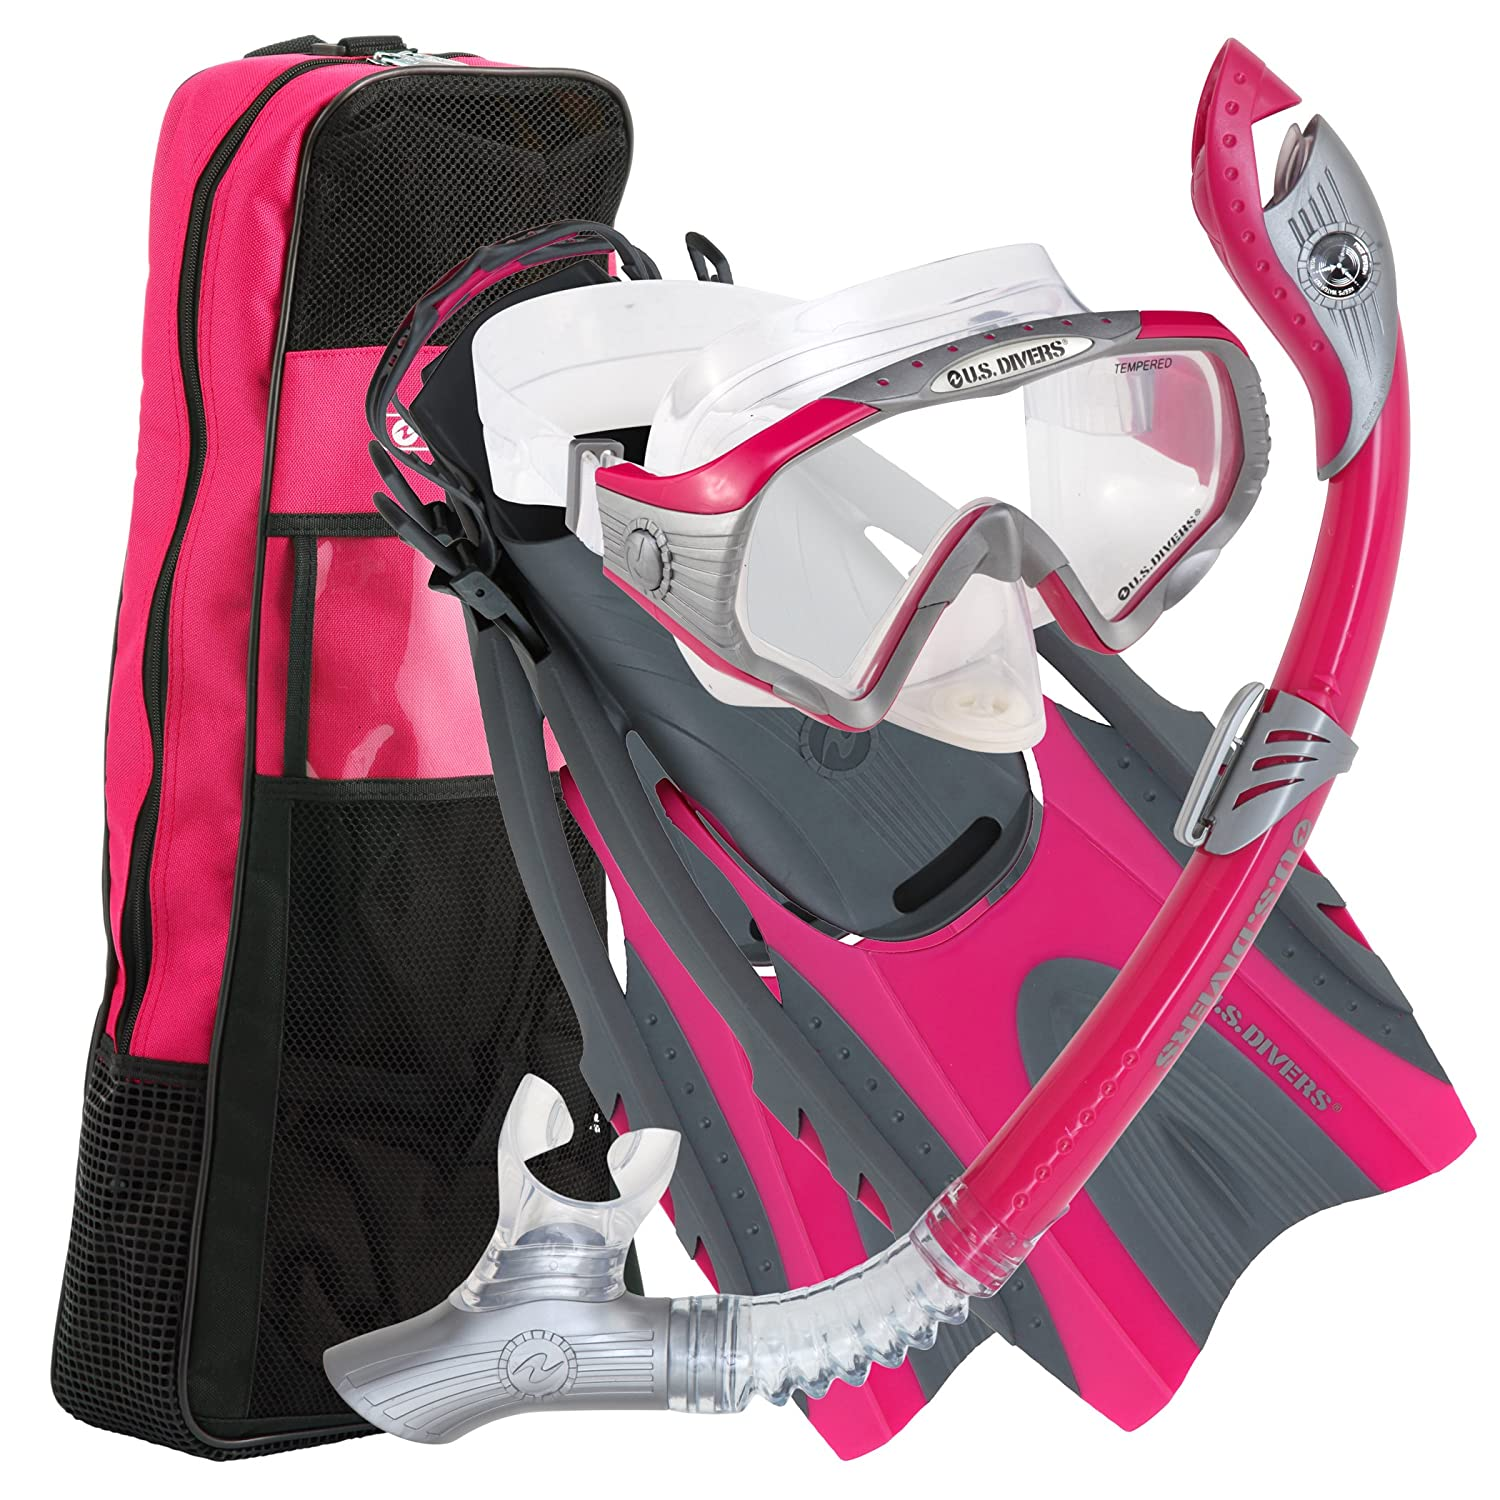 US Divers Adult Snorkeling Gear Set Review